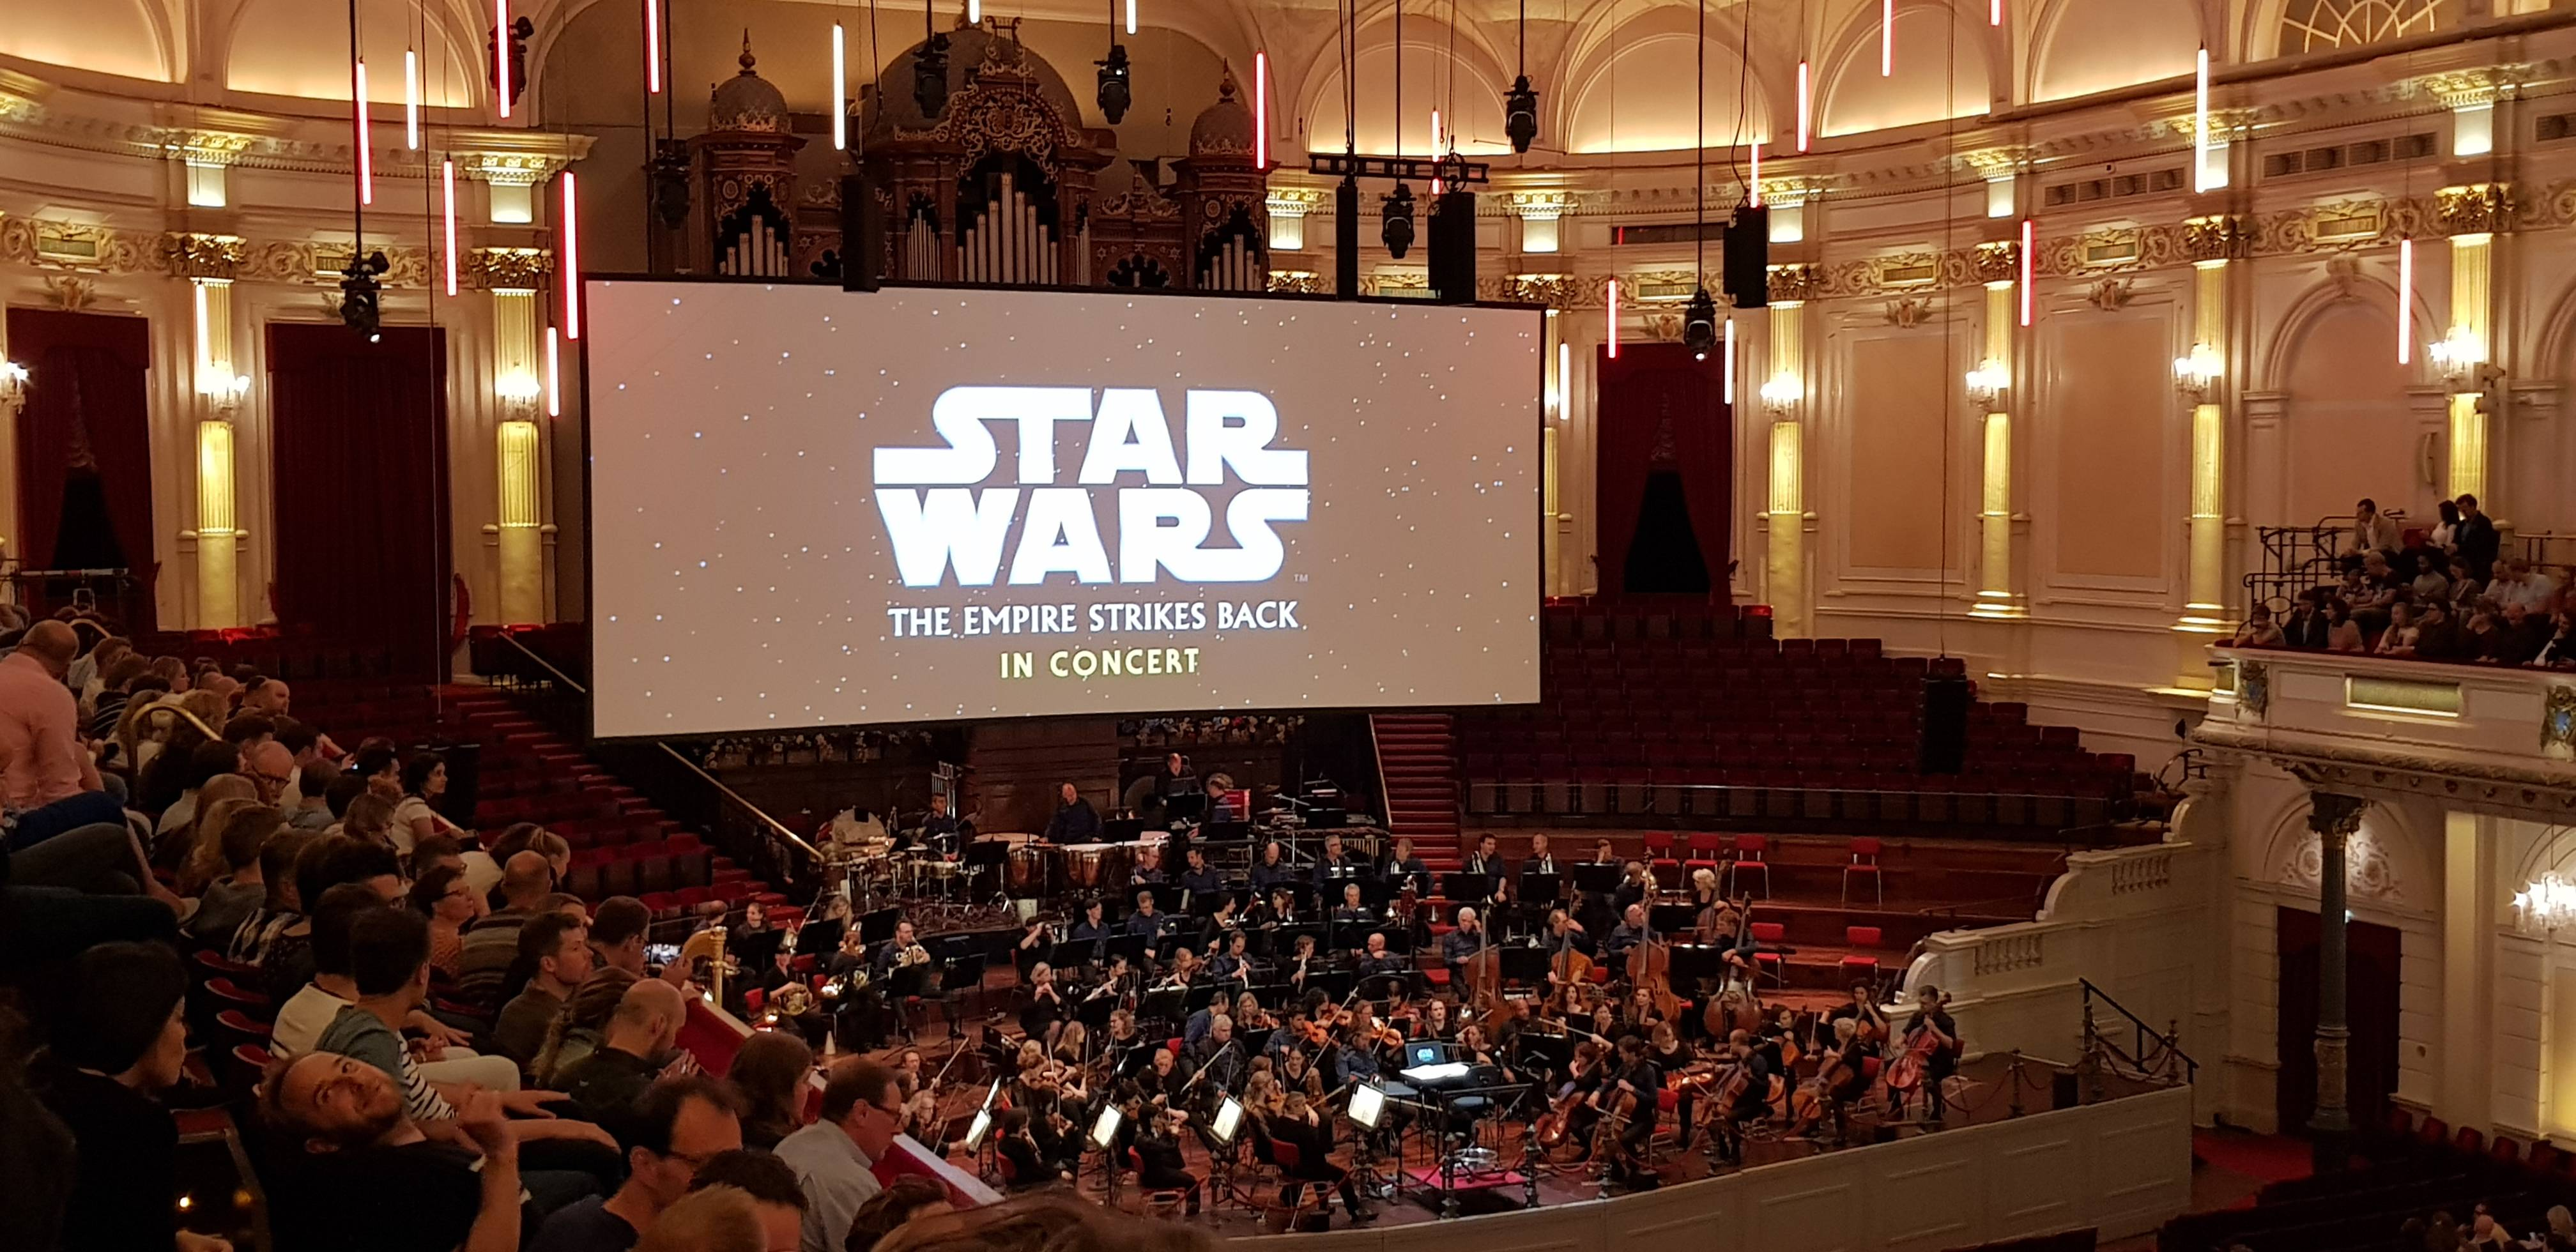 Watched Empire Strikes Back with a live orchestra yesterday!